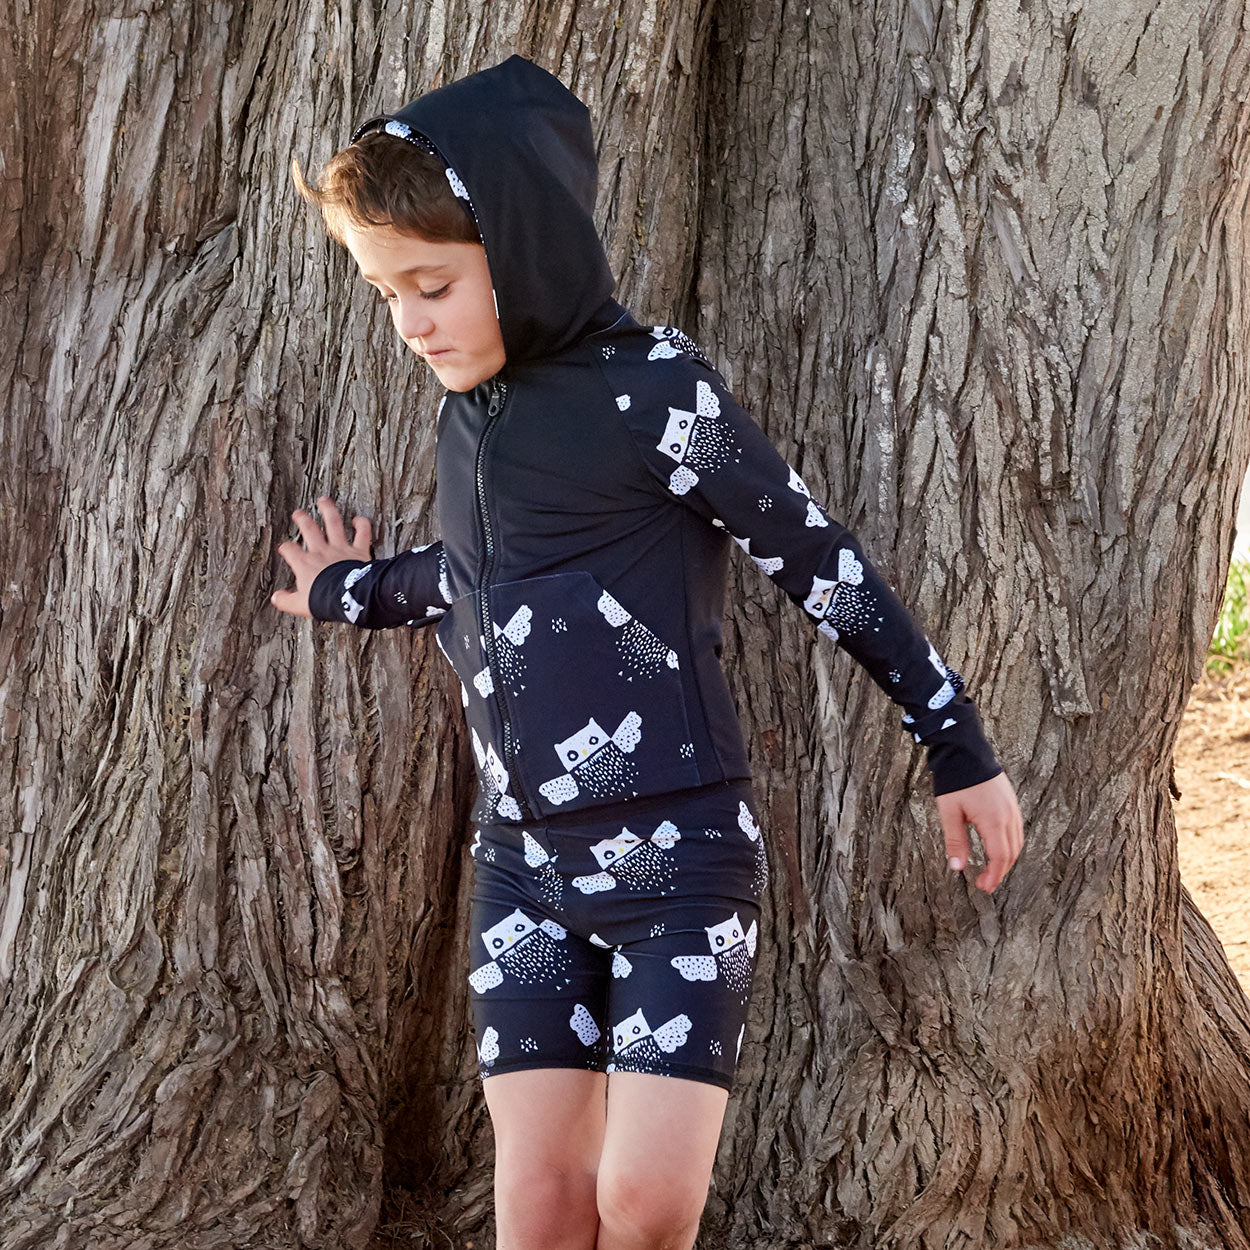 Owls Zip Up Hoodie Upf50 Kids Boys Girls Size 2 12 Black White Unisex Boy Wearing A Hoodie In Front Of A Tree Sunpoplife